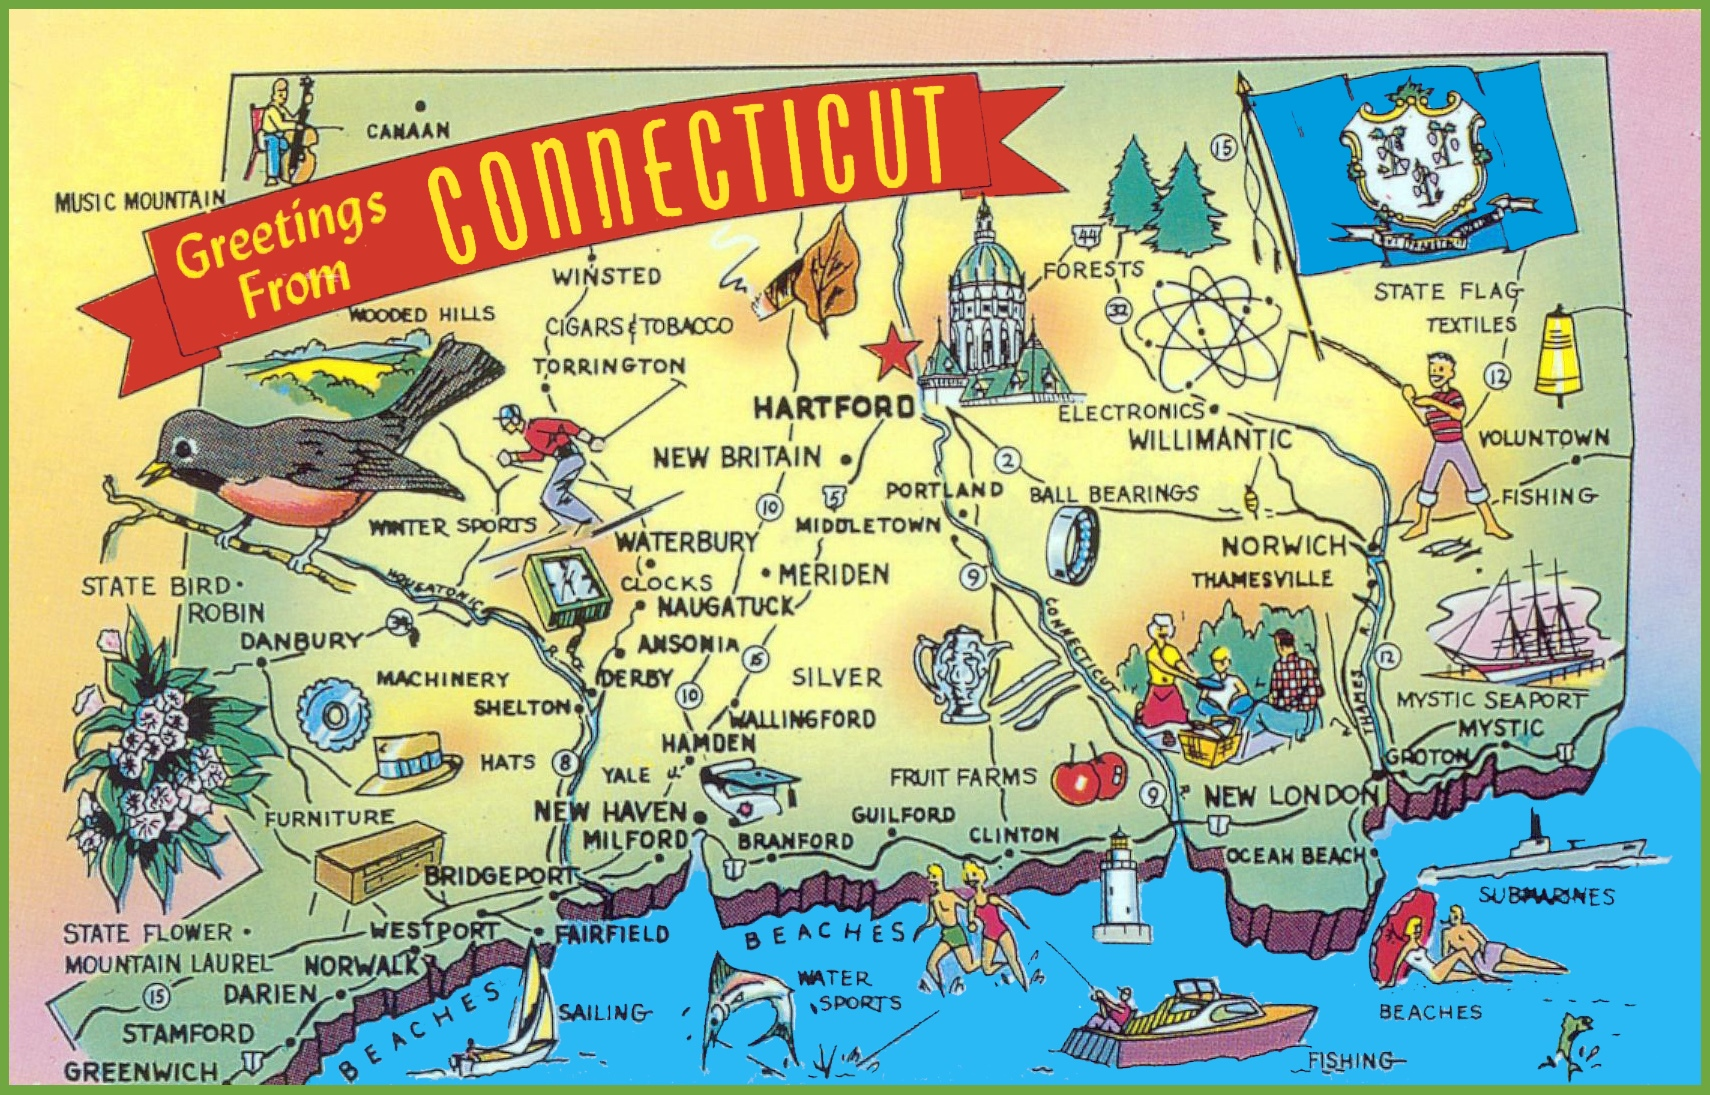 Connecticut State Maps USA Maps Of Connecticut CT - Conneticut map